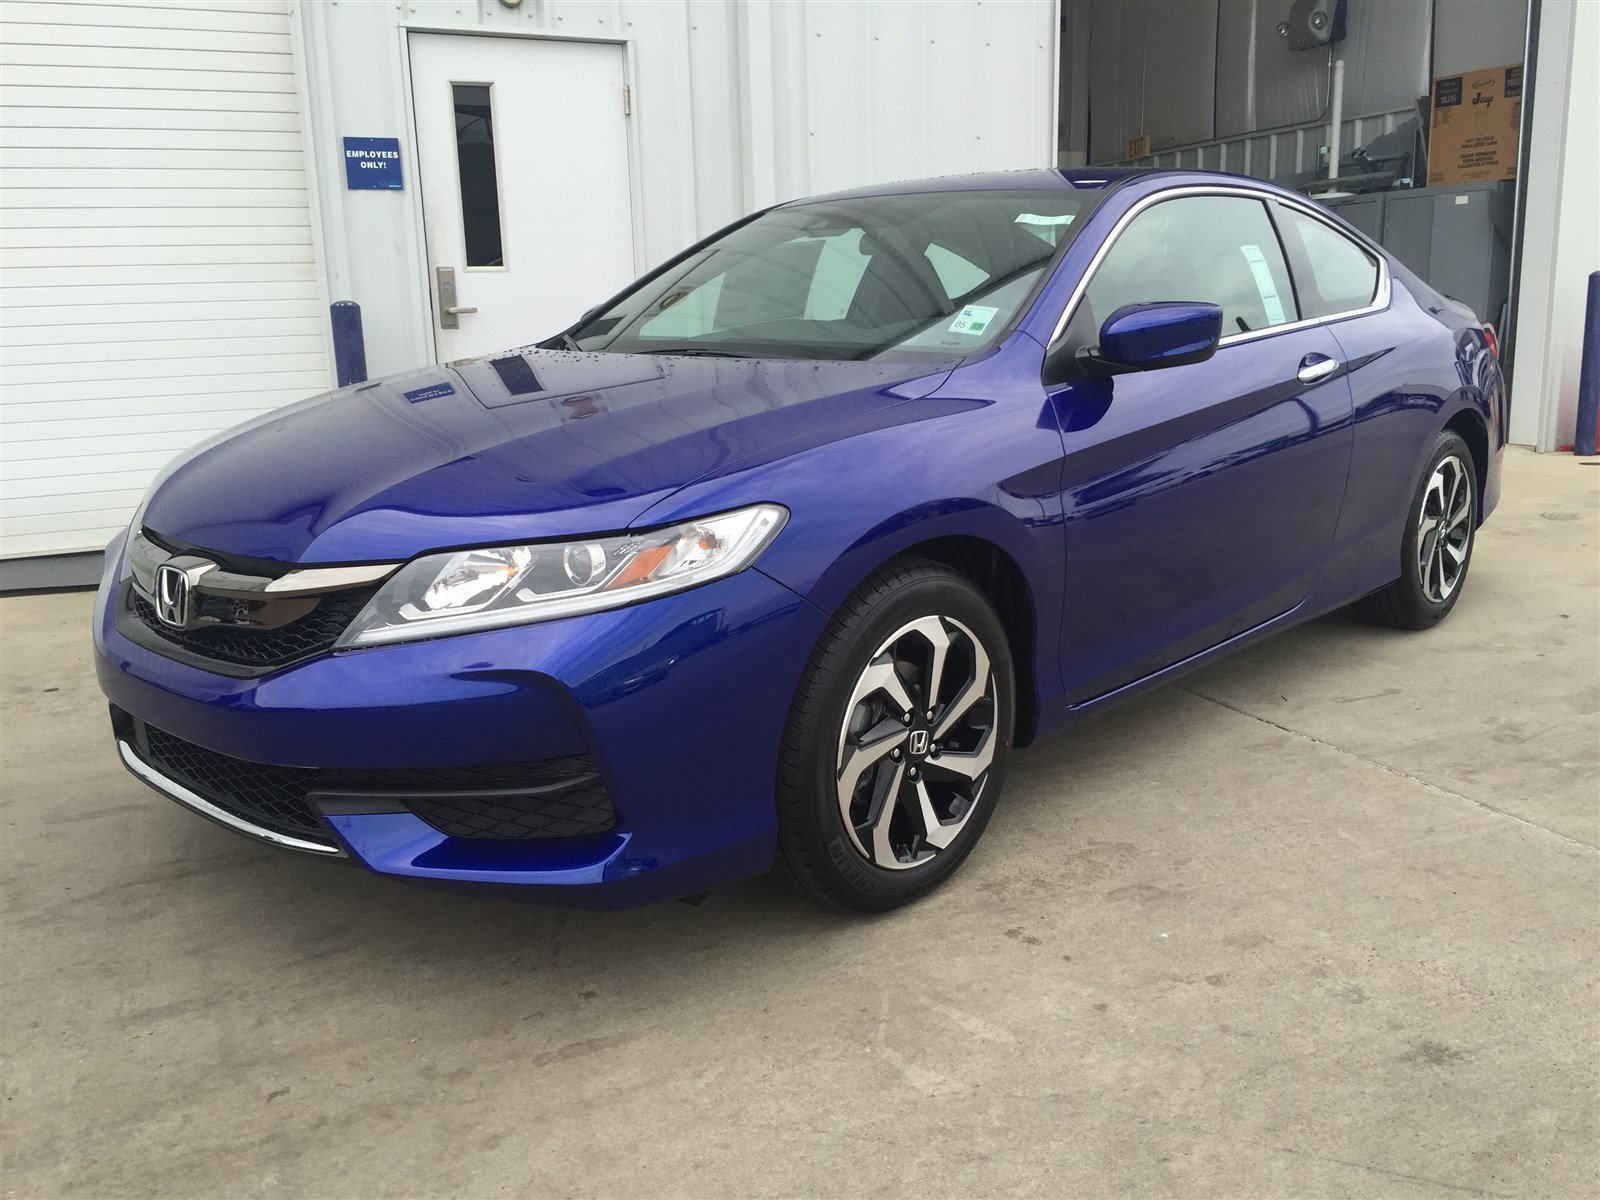 new 2016 honda accord coupe lx s 2dr car in shreveport. Black Bedroom Furniture Sets. Home Design Ideas